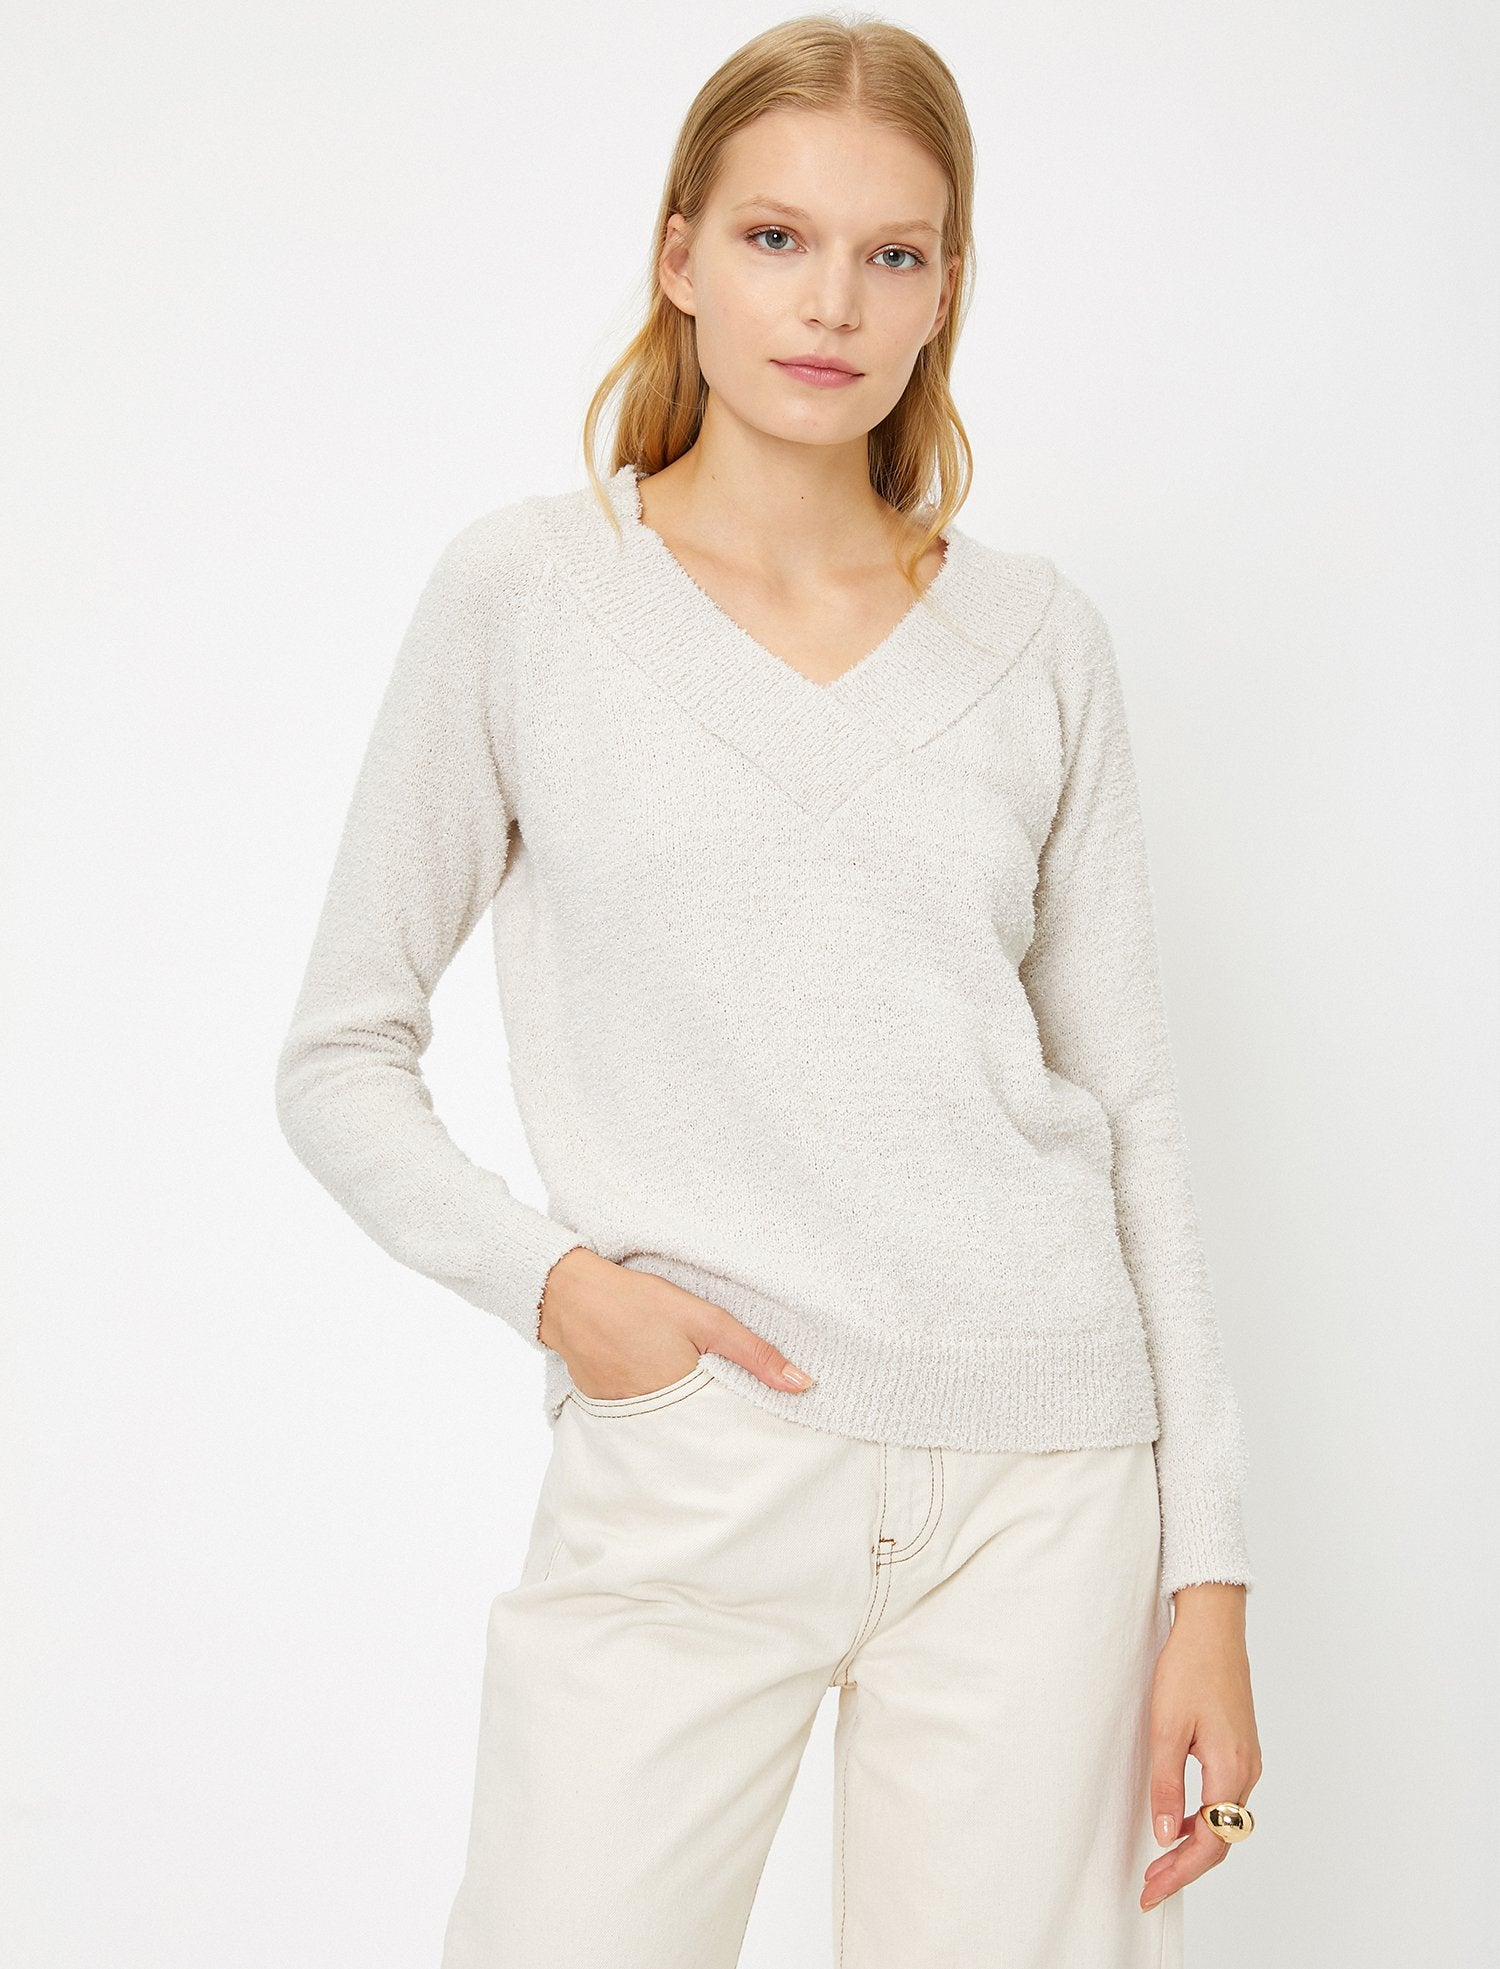 Deep V Neck Sweater in Cream